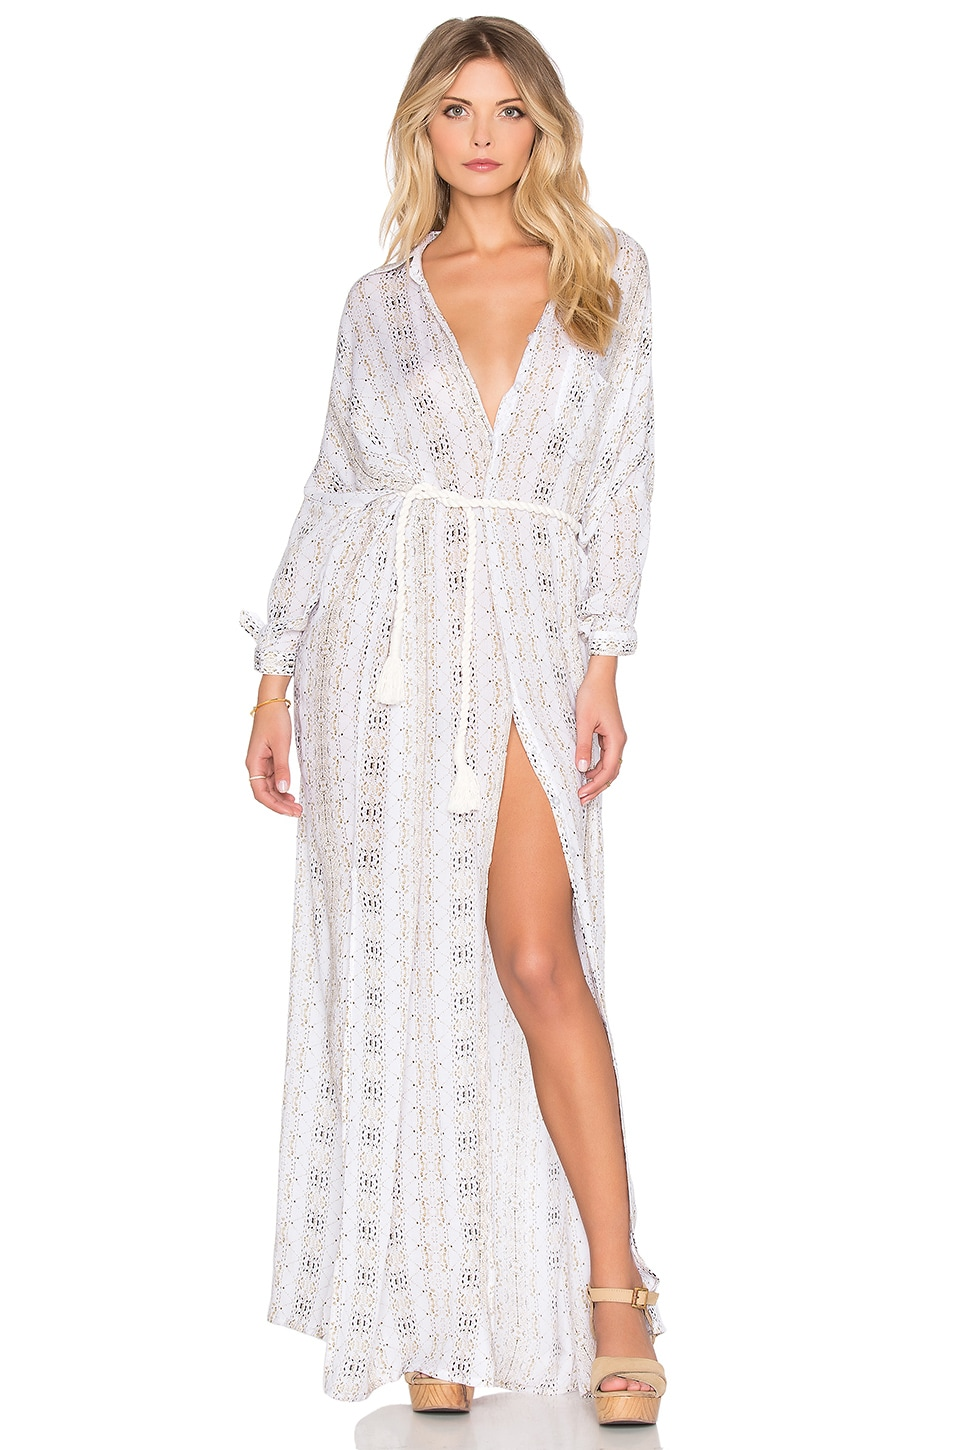 South Beach Caftan